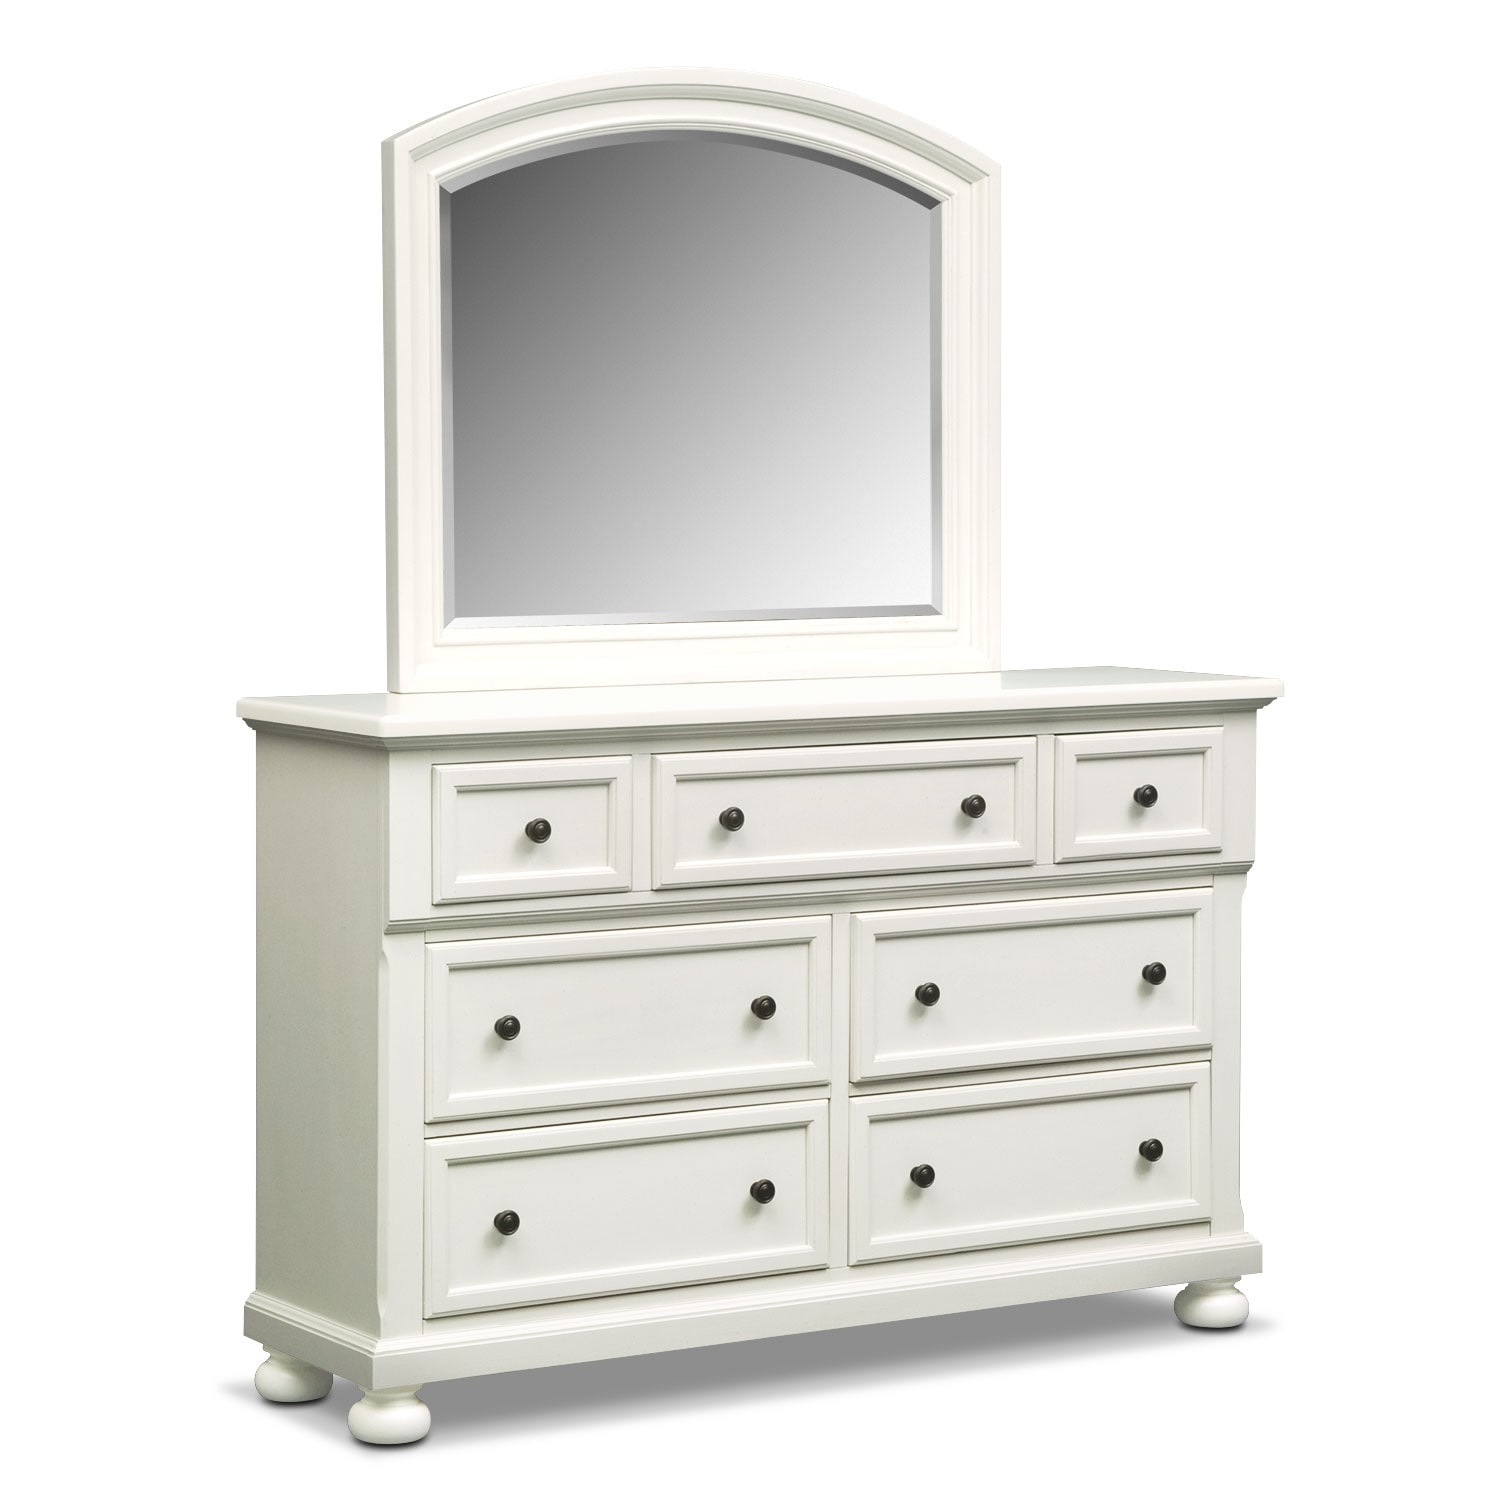 Hanover Dresser And Mirror White Value City Furniture